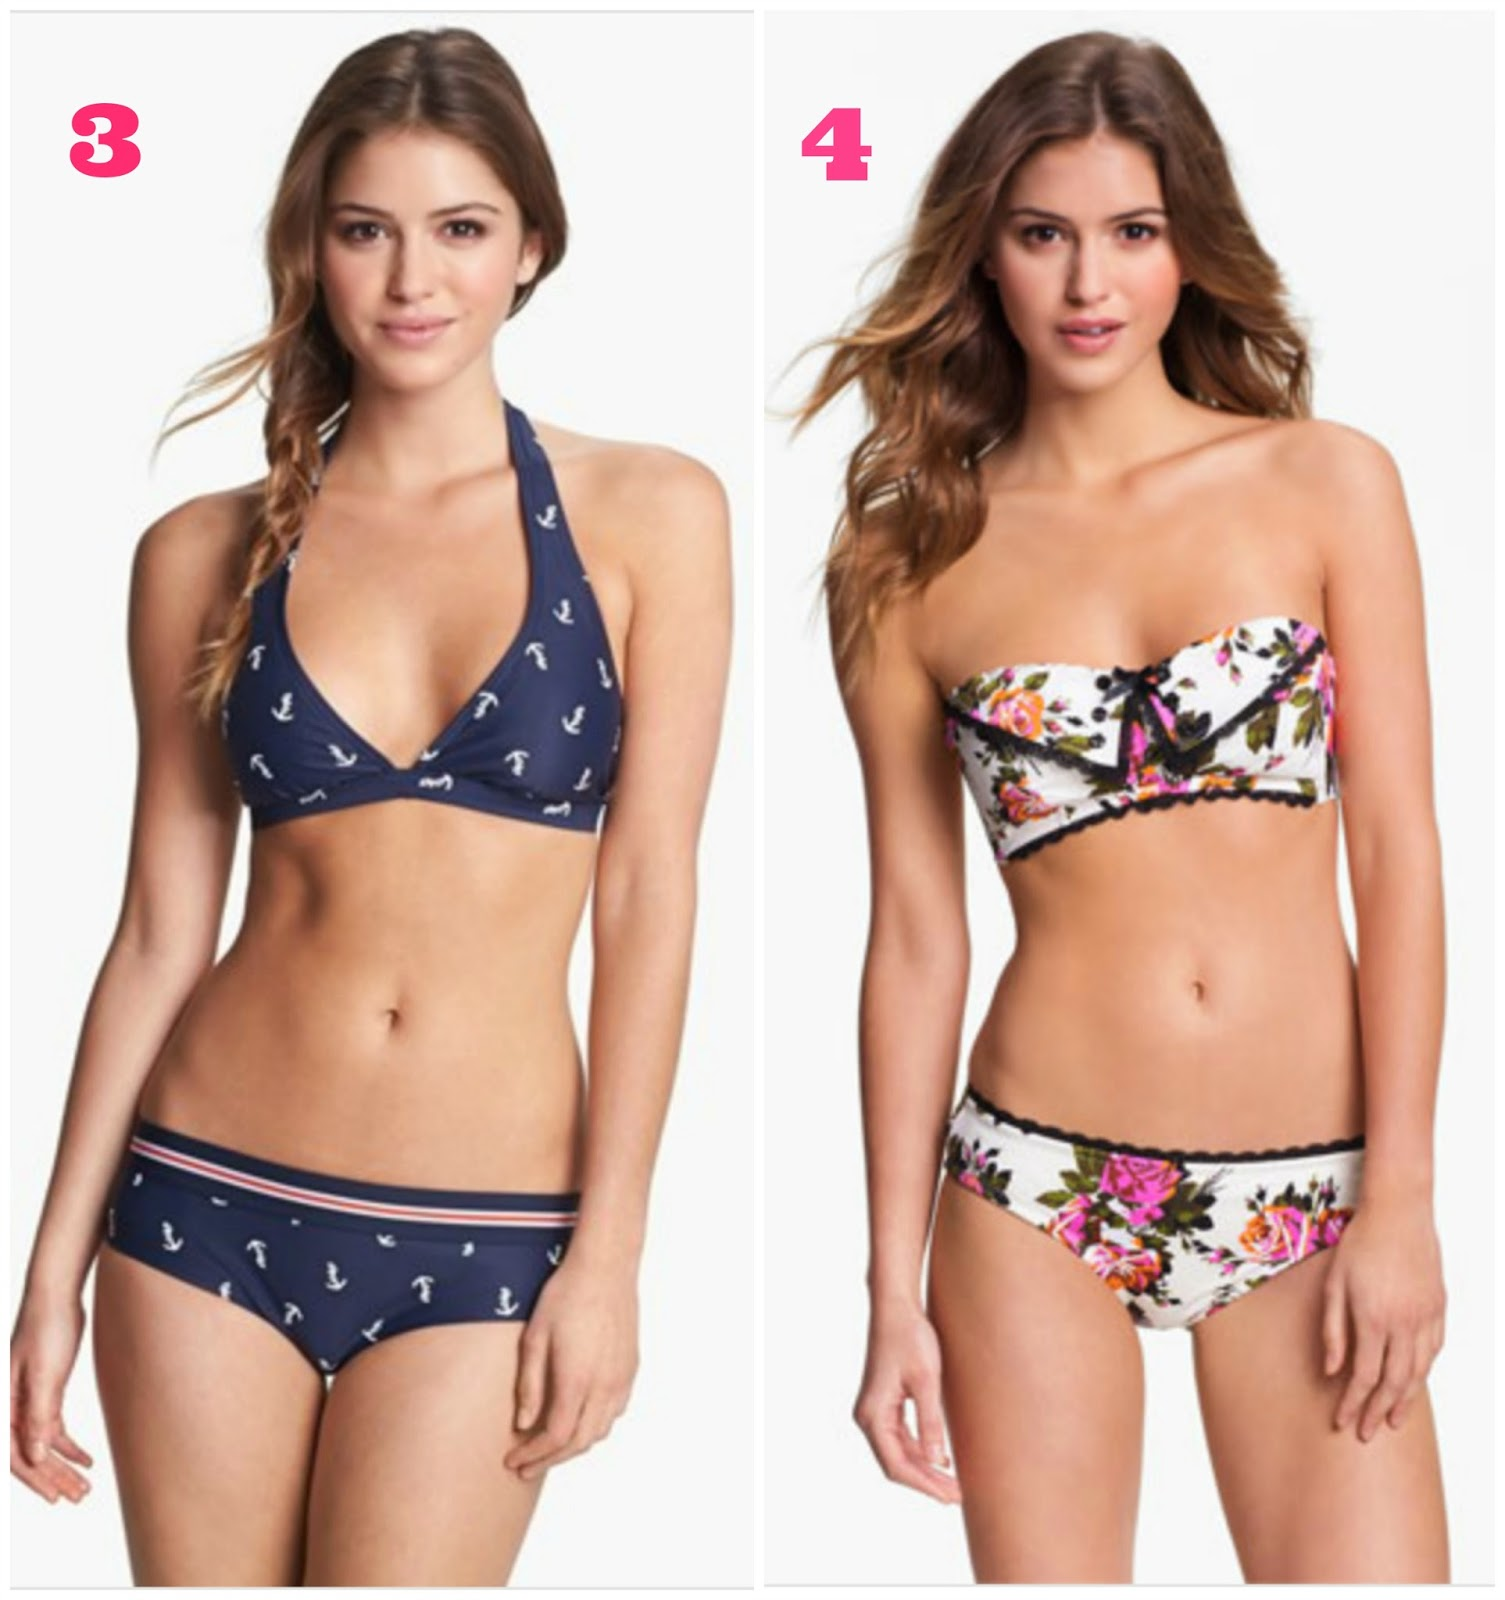 It's not an overstatement to say that bra-sized swimsuits have revolutionized the swimwear industry. Now you can get exactly the fit you need in one-piece suits and swim tops that match your bra size.